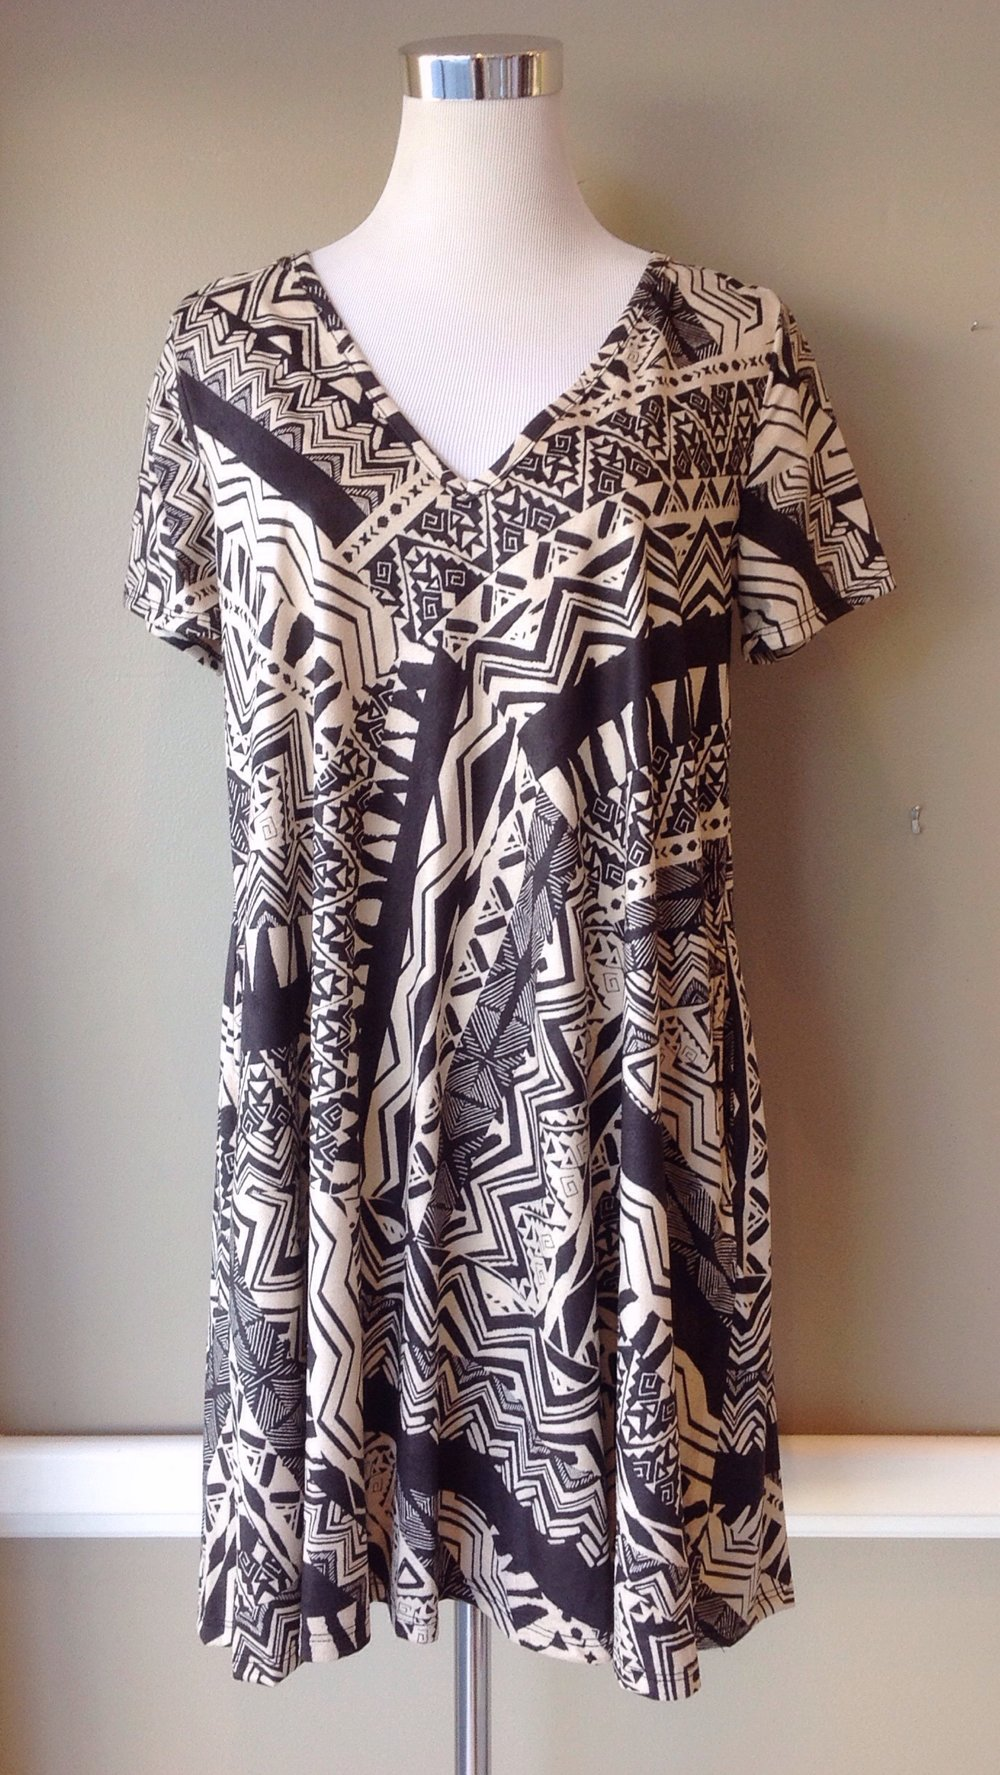 Woven swing dress with side pockets in taupe/brown, $38